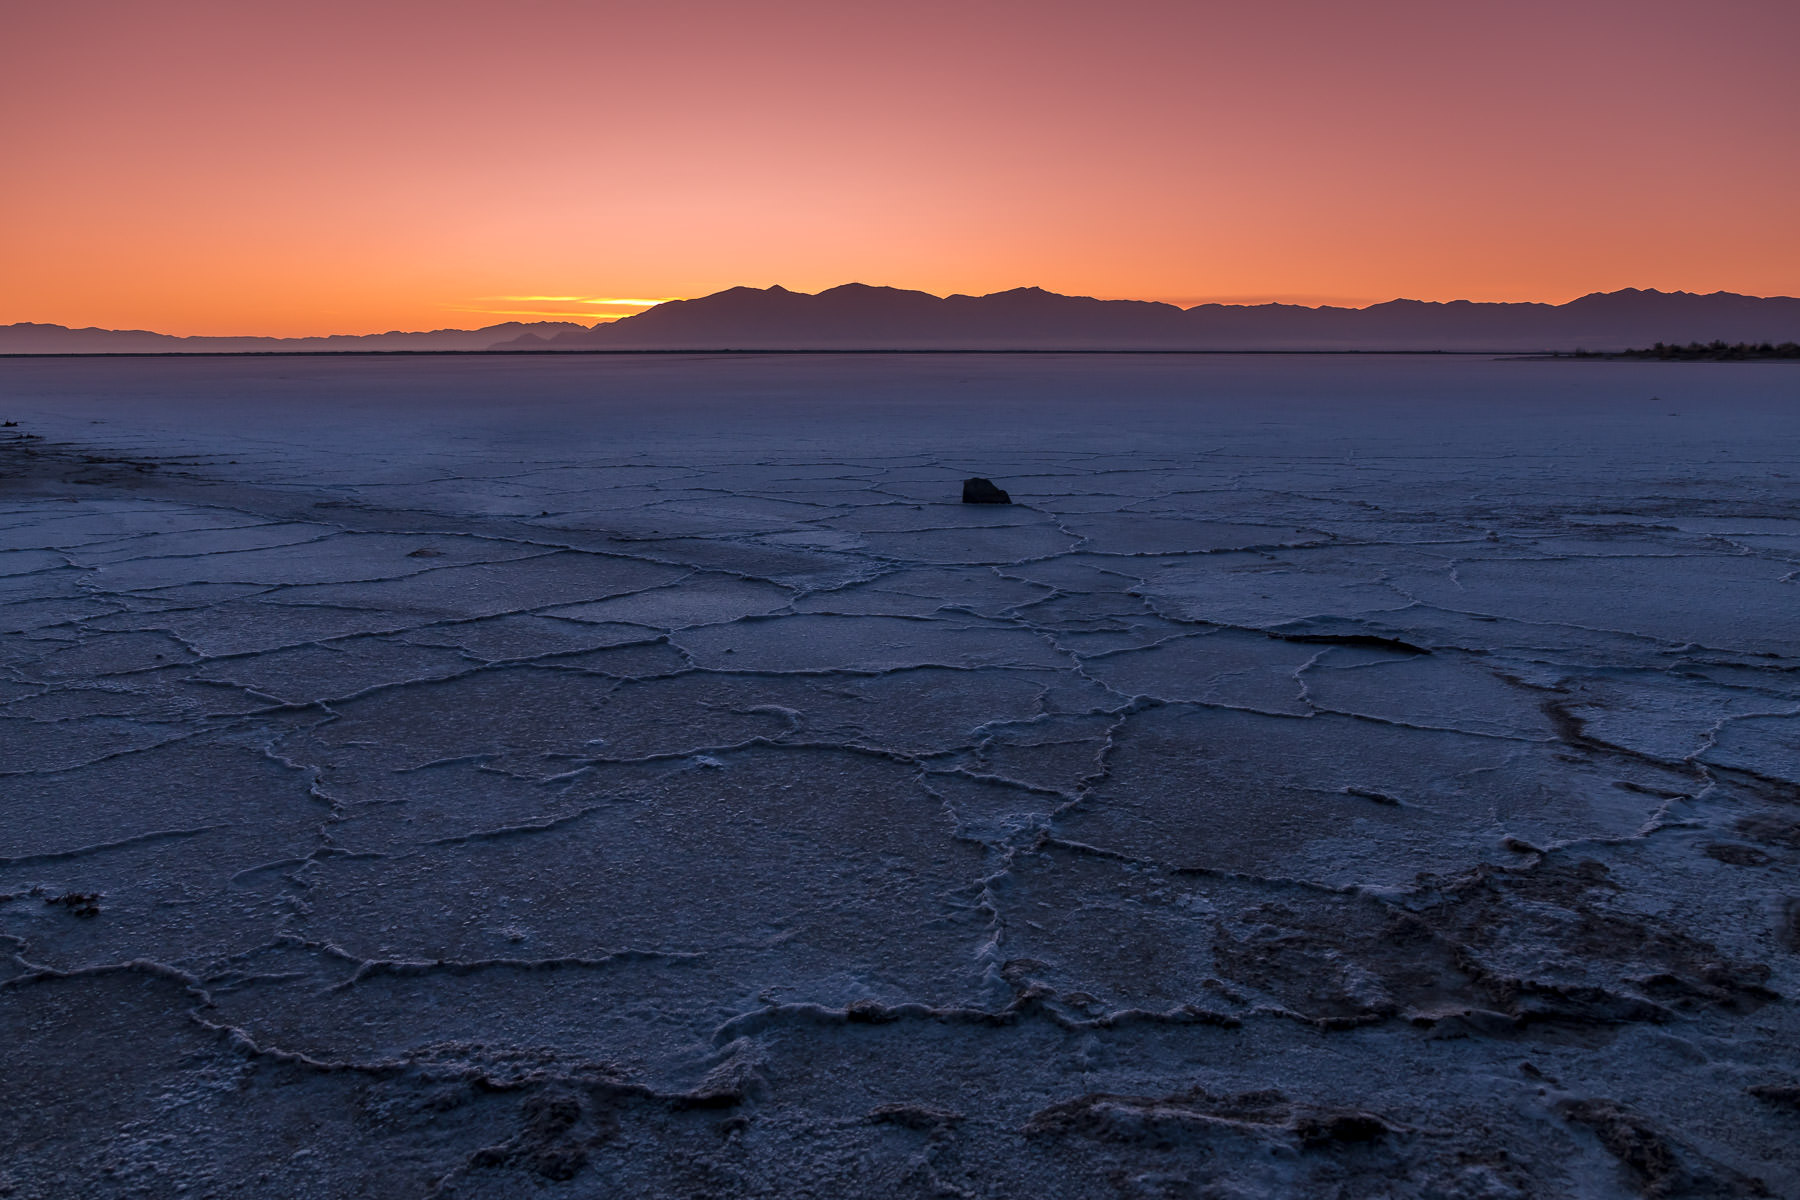 The sun rises on the dried salt flat shore of the Great Salt Lake, Utah.